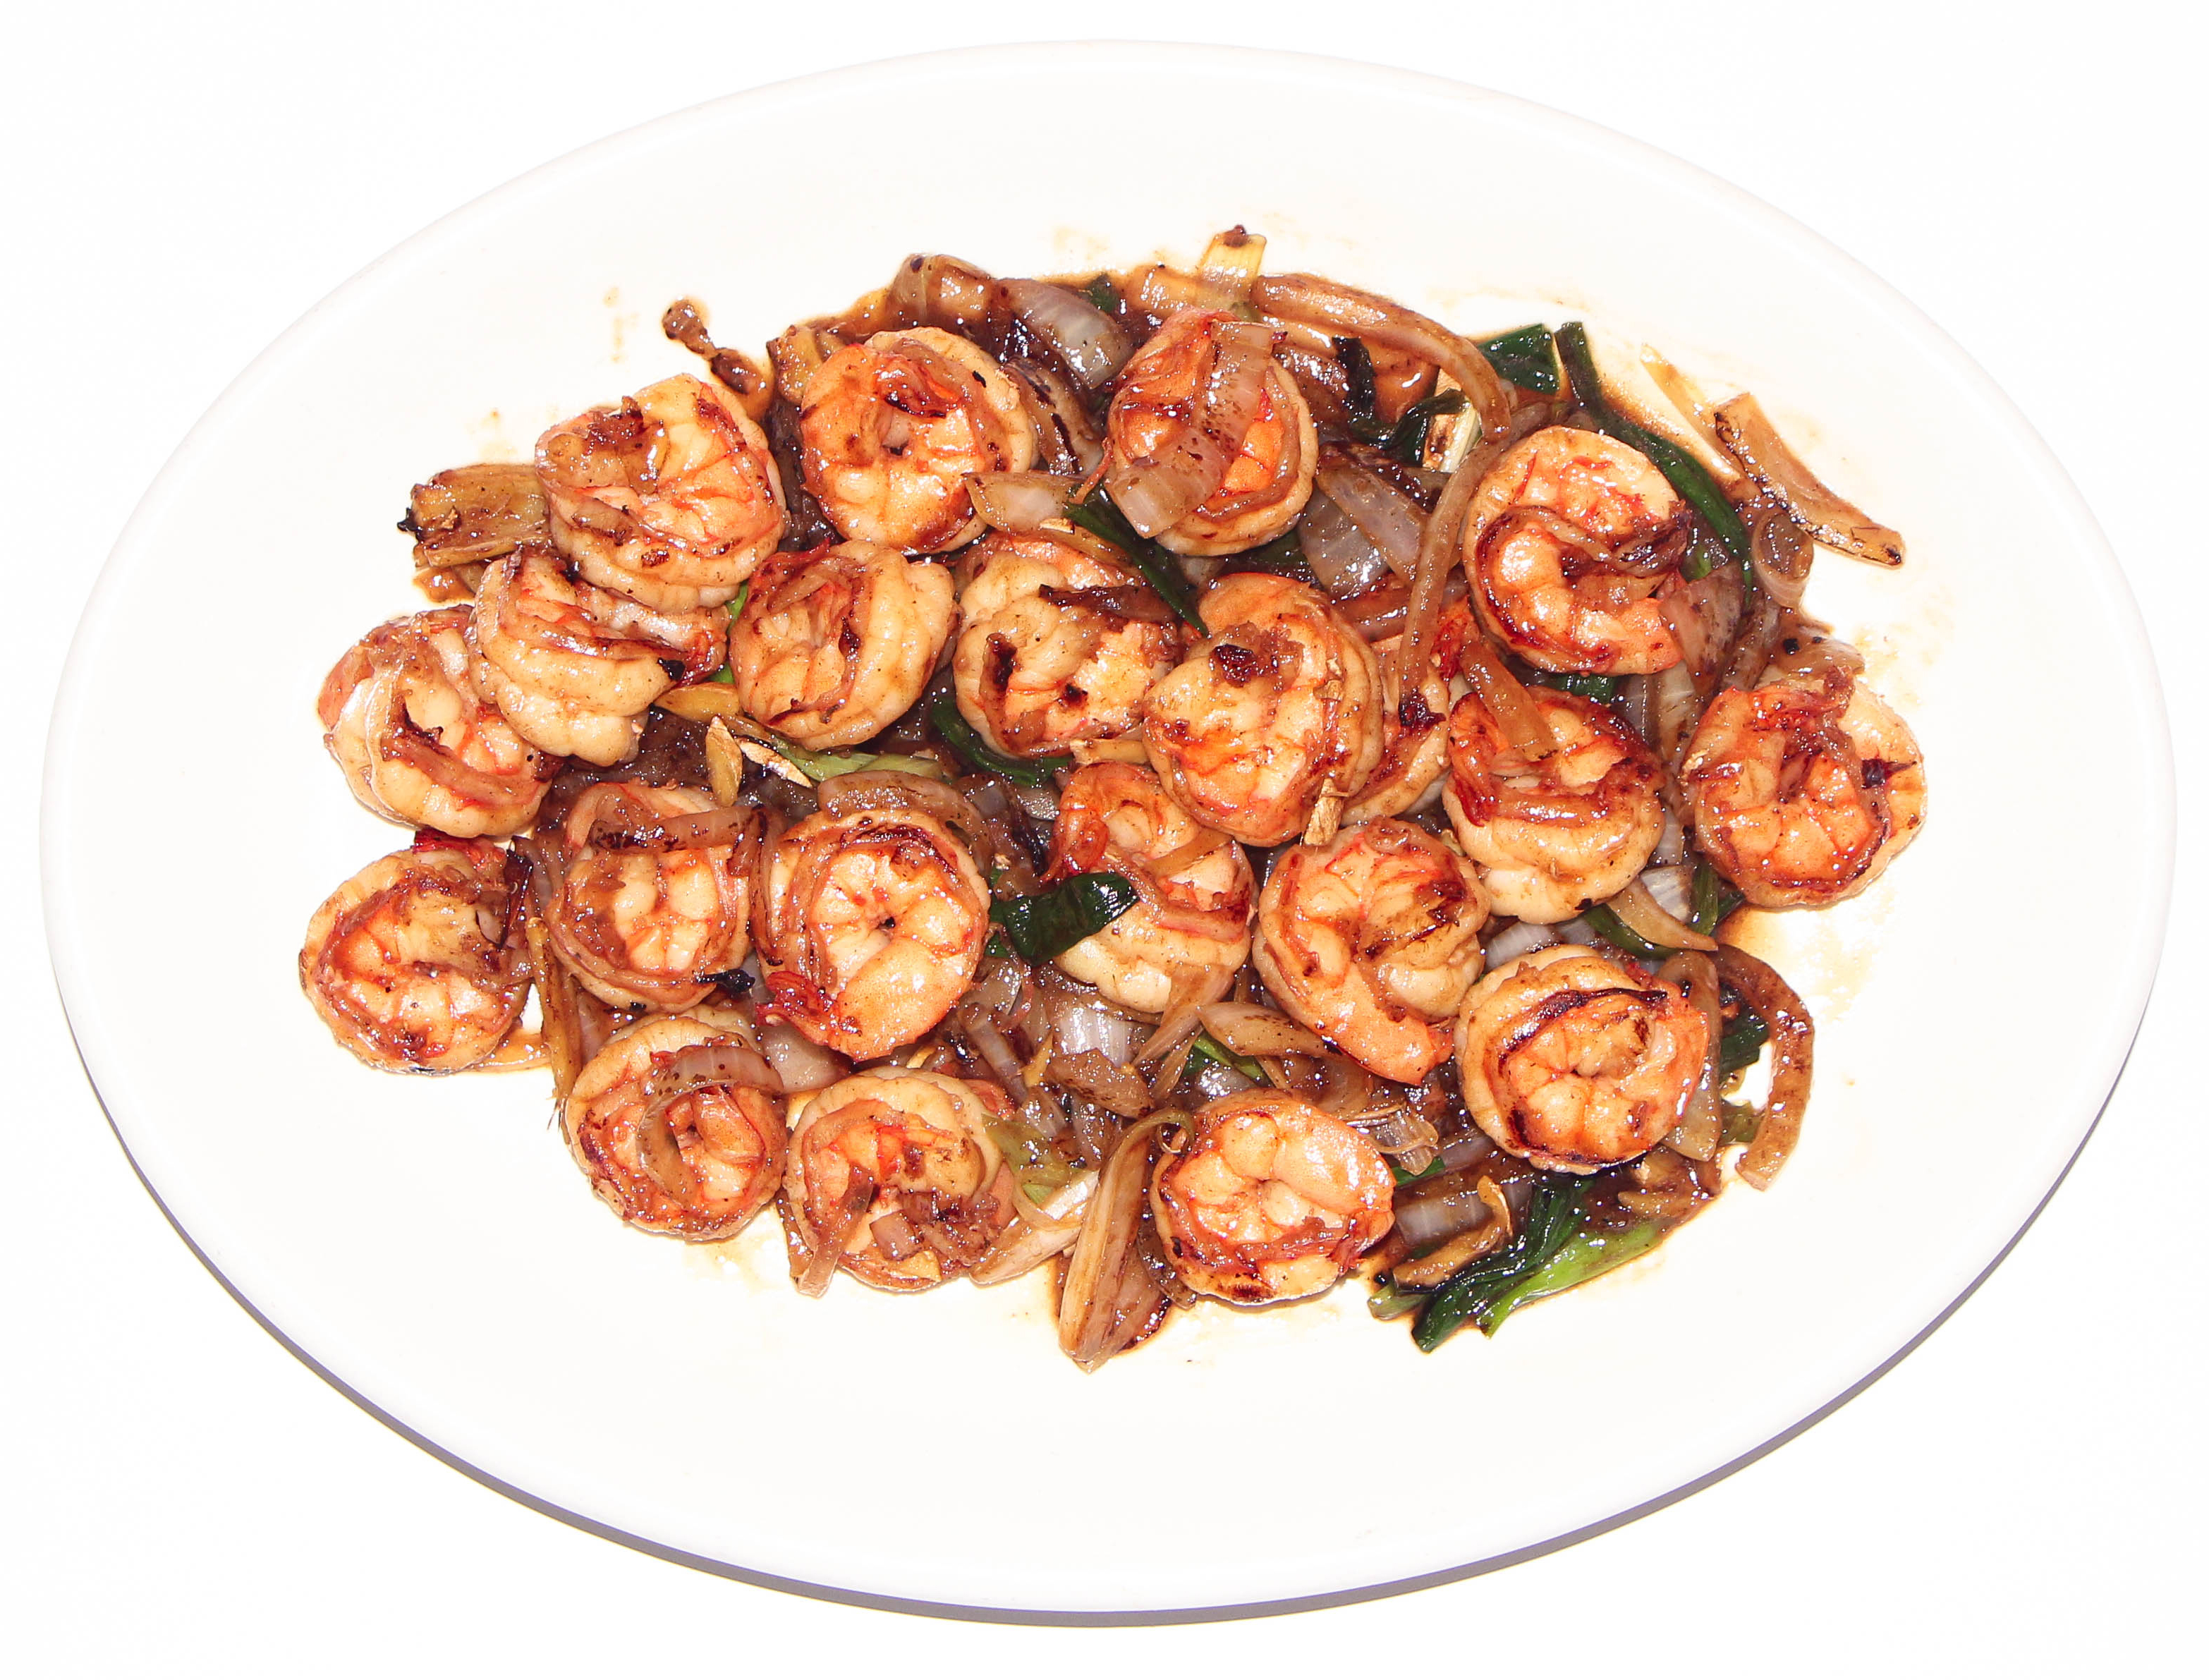 Stir Fried Shrimp with Ginger & Onions - Cunard Restaurant